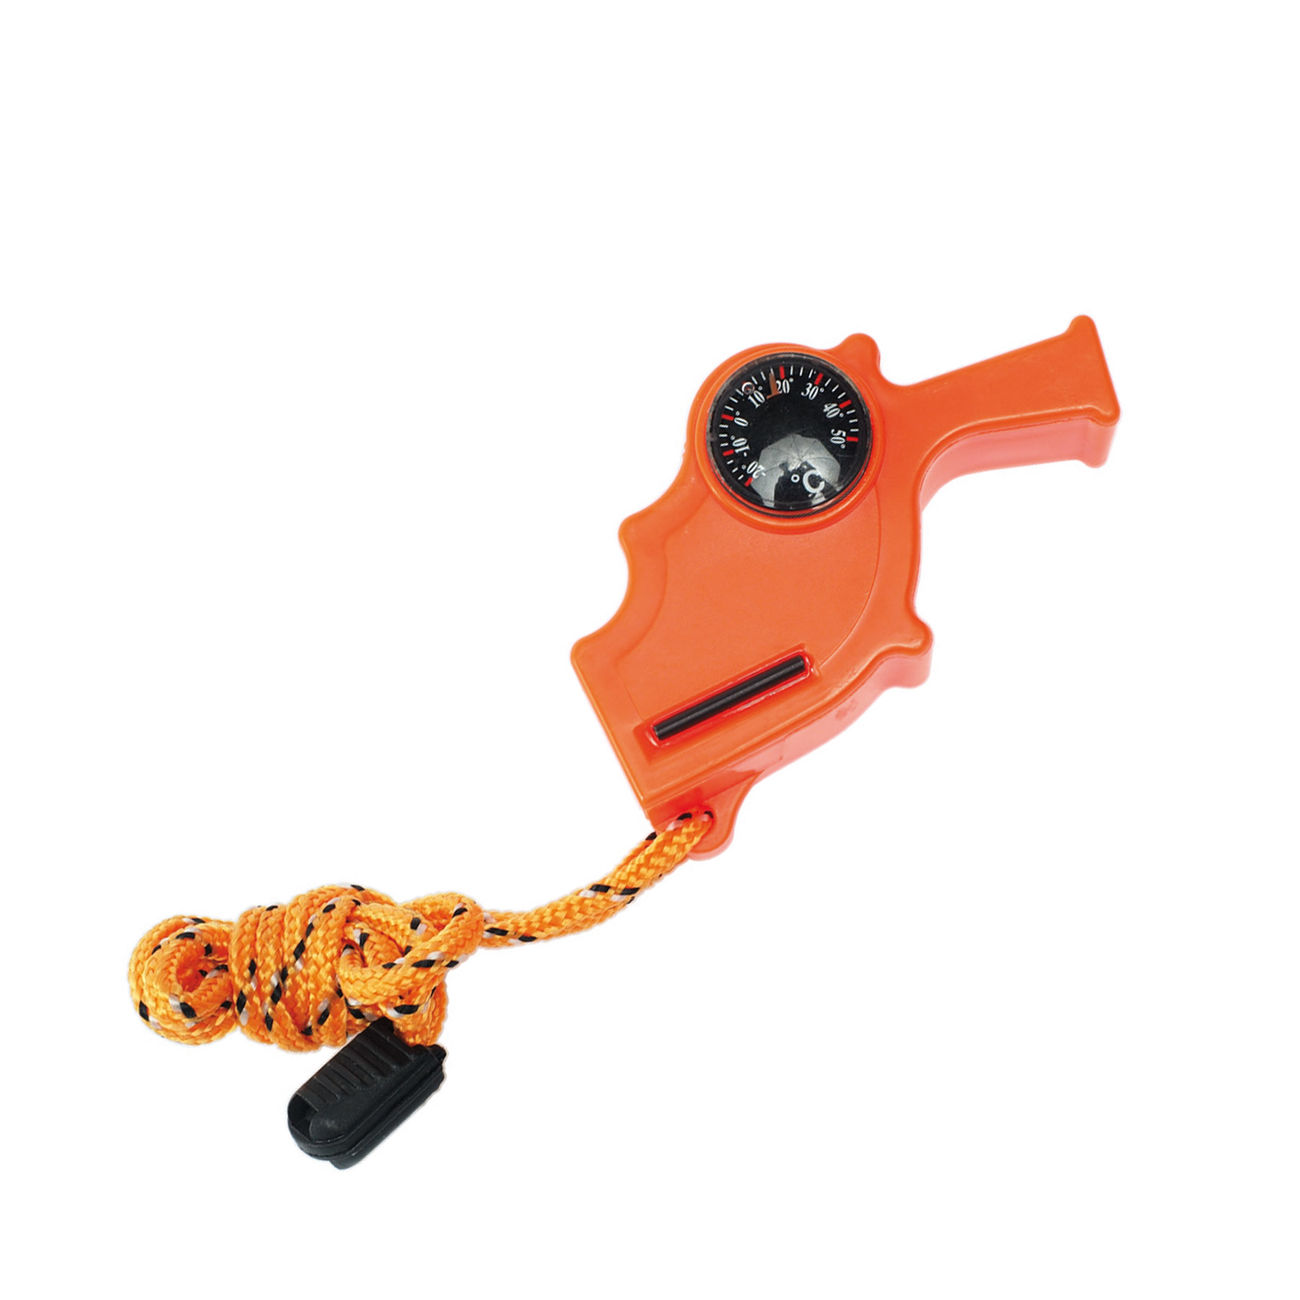 Mil-Tec Notfallpfeife Safety Whistle 4-in-1 orange 1